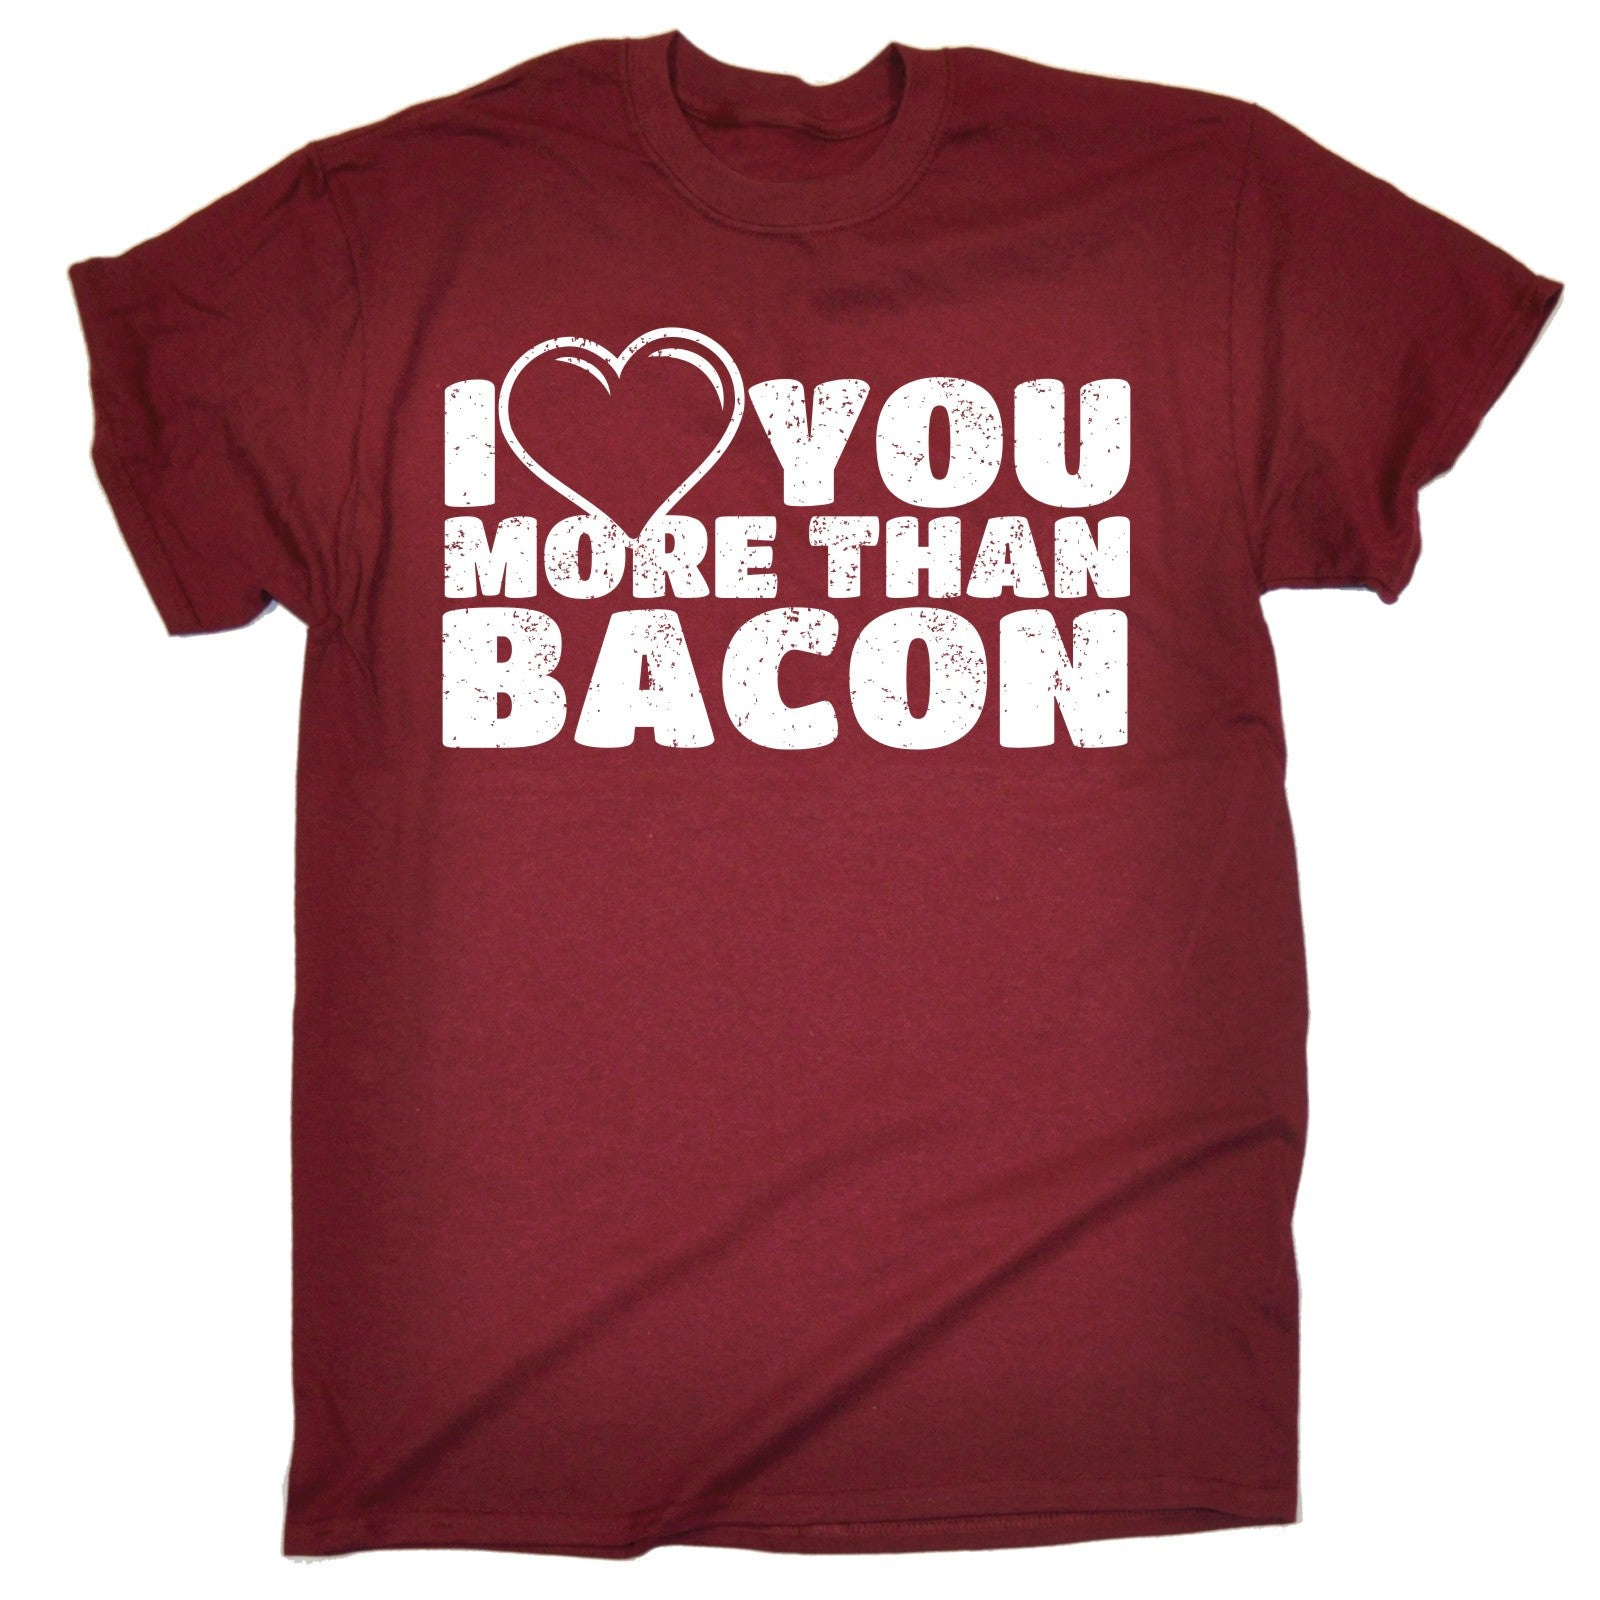 Details About I LOVE YOU MORE THAN BACON T SHIRT Tee Humour Husband Wife Funny Birthday Gift